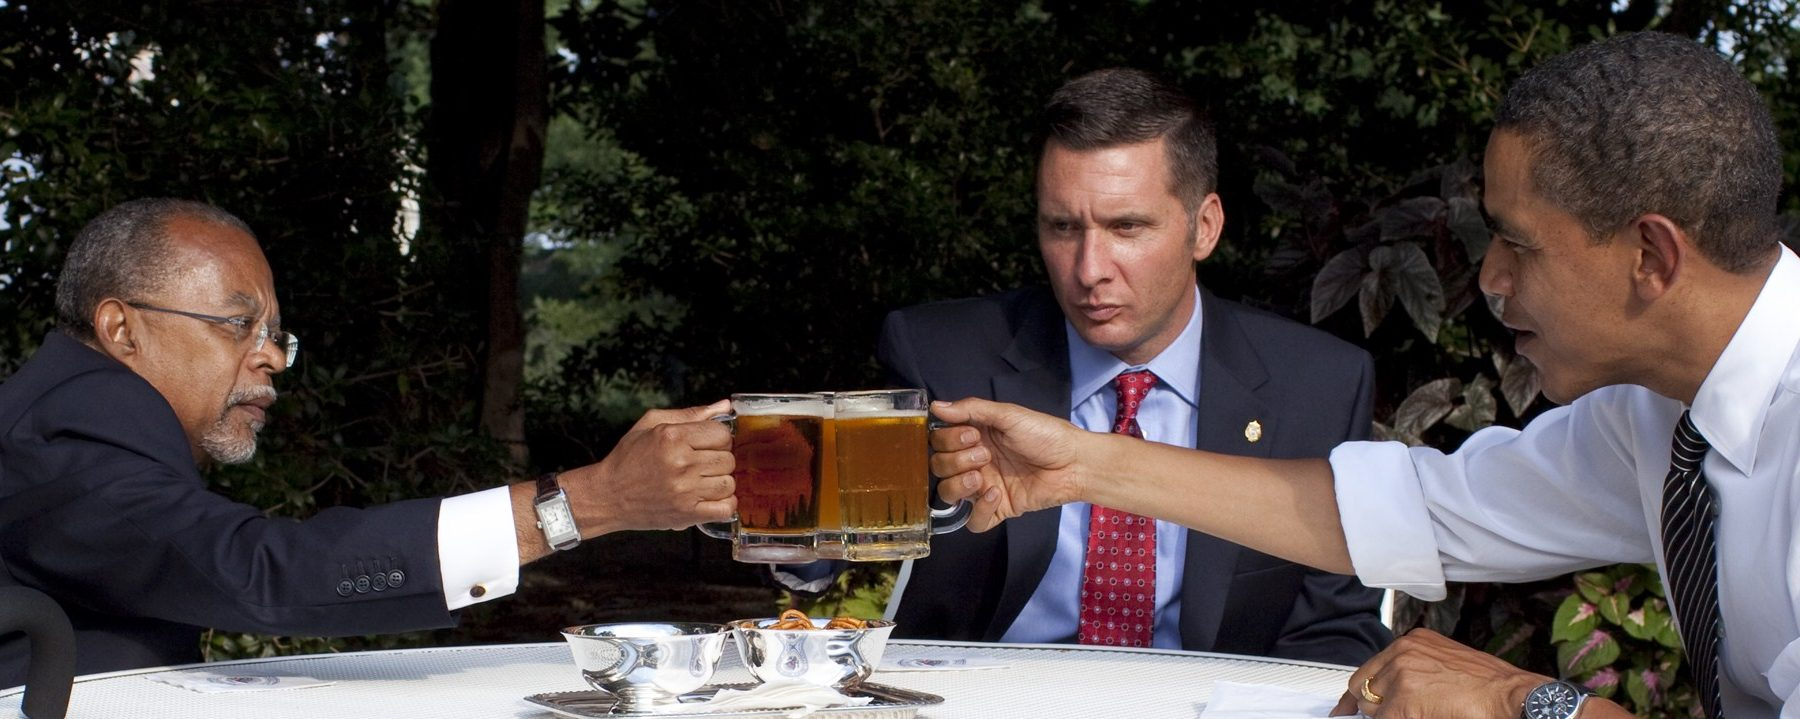 Brewin' Craft Beer at the White House